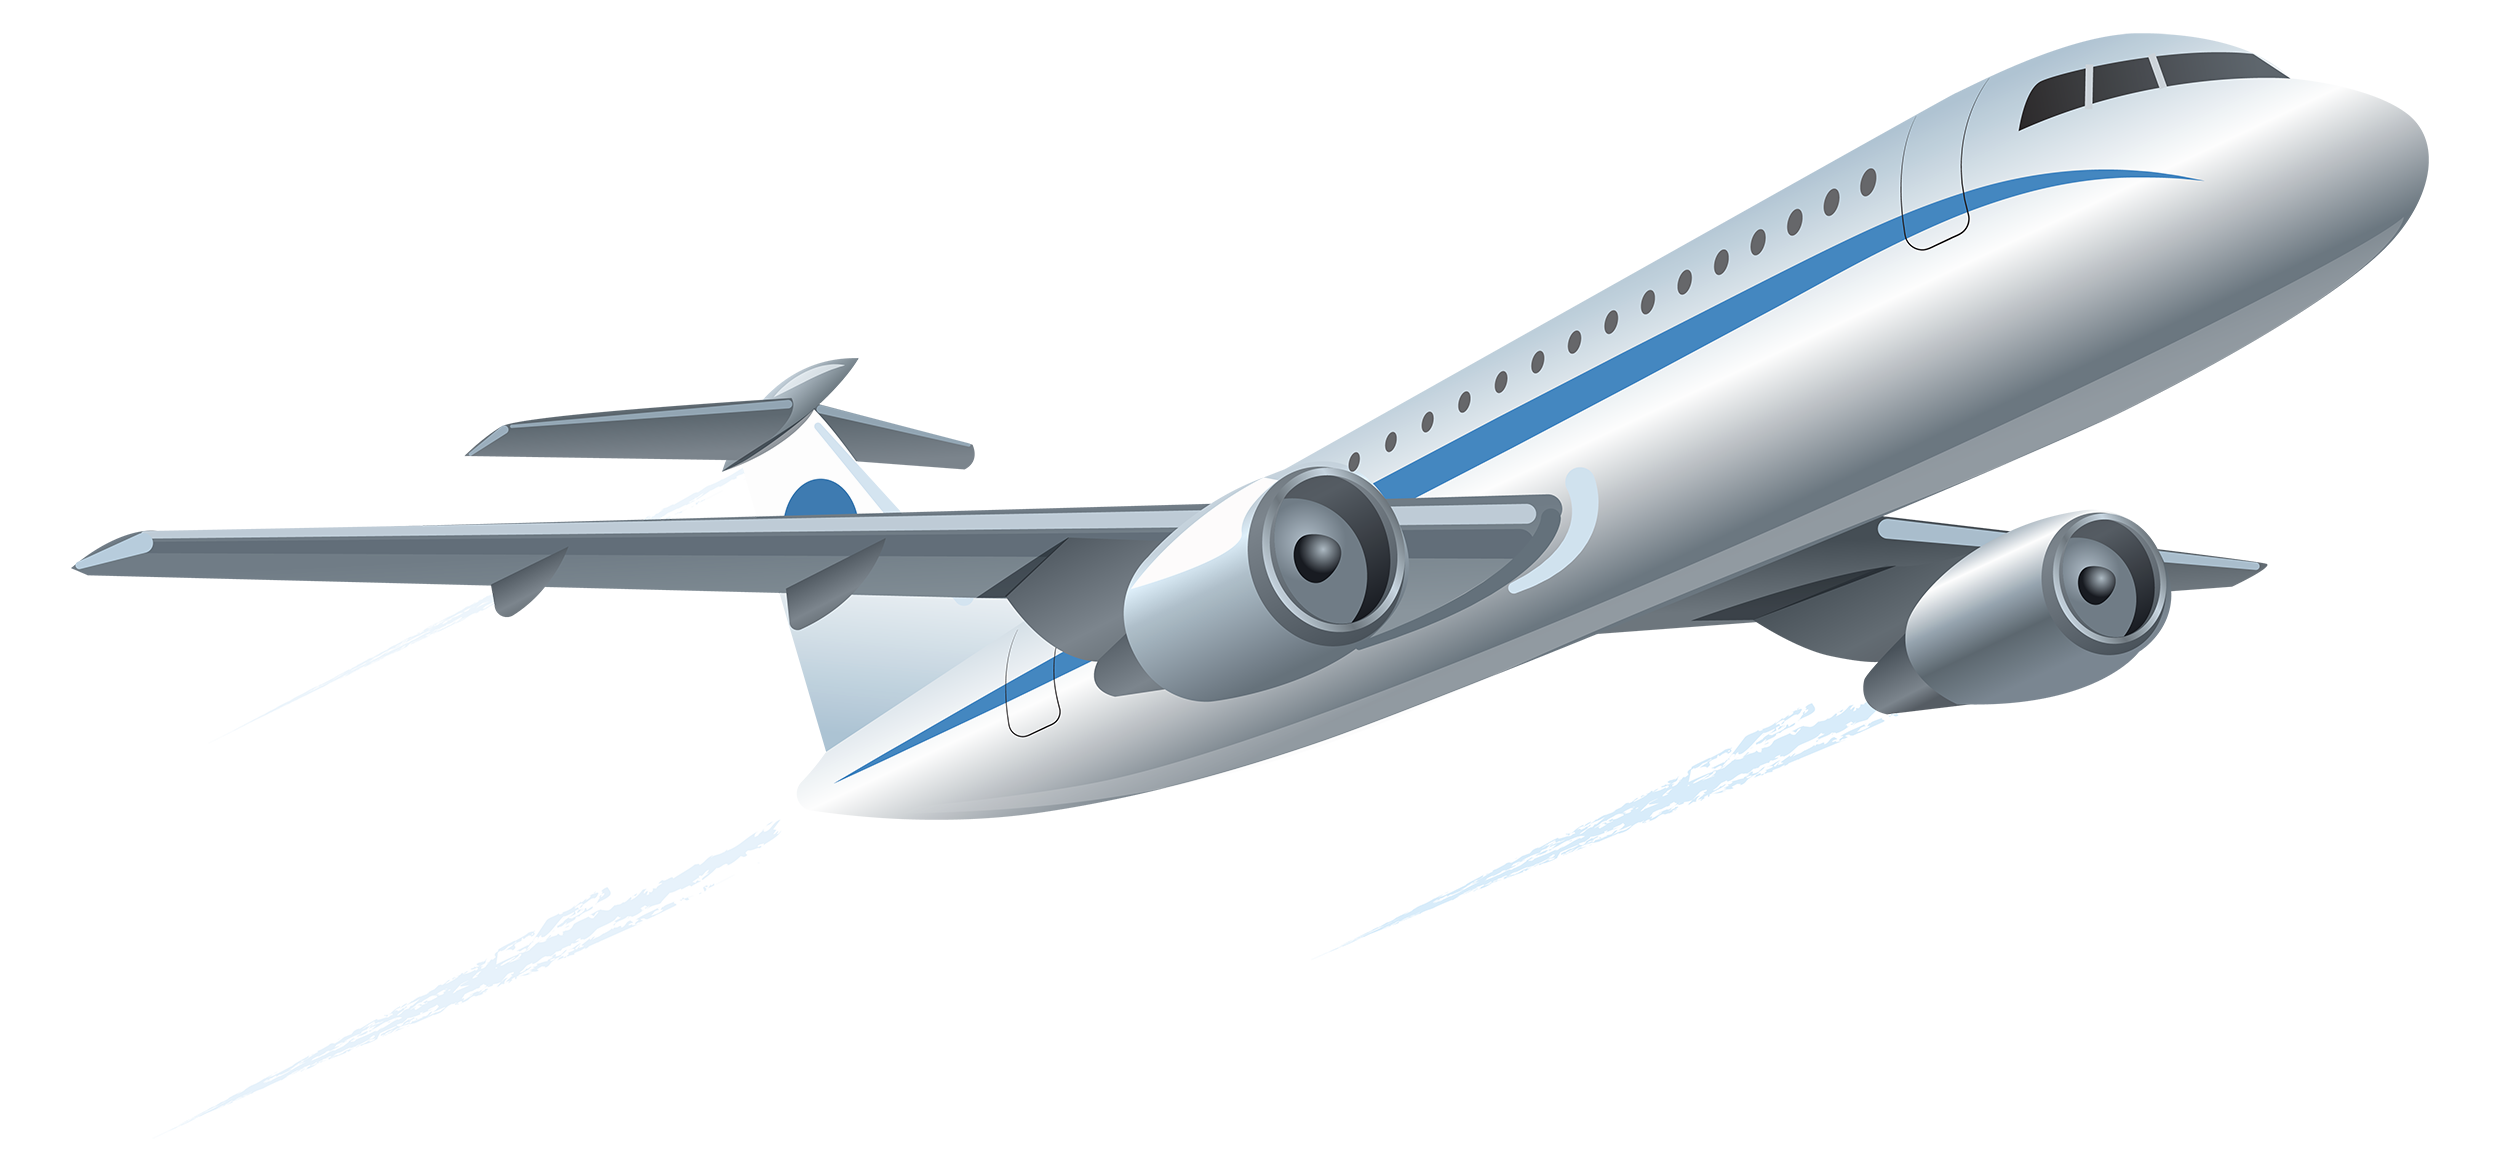 Airplane Png Clipart Clip Art Airline Reservations Affordable Flights